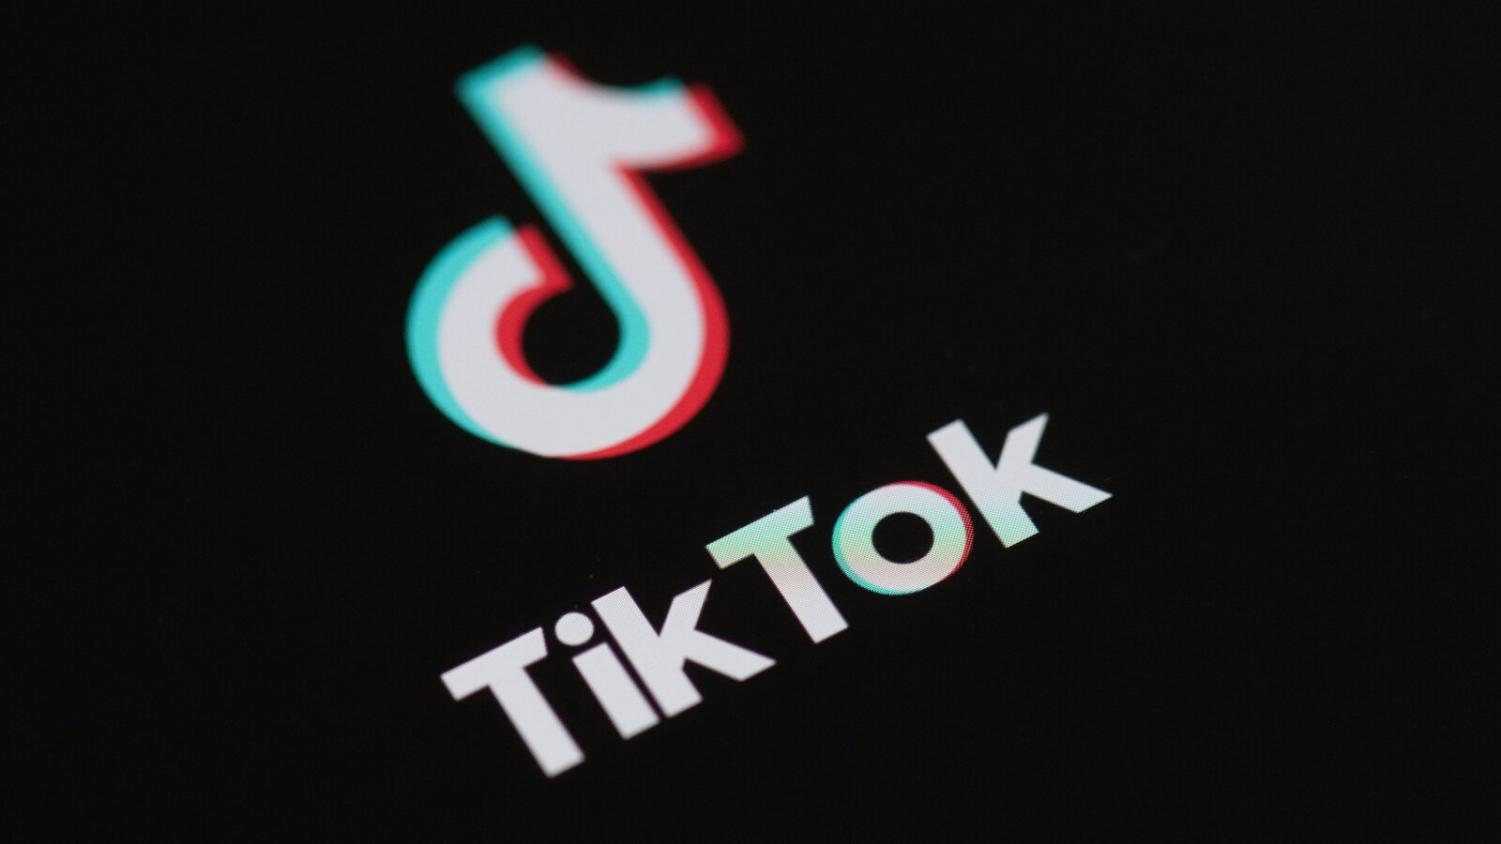 Although negotiations seemed to be drawing to a close, recent events indicate back-and-forth over a U.S. TikTok ban may continue.